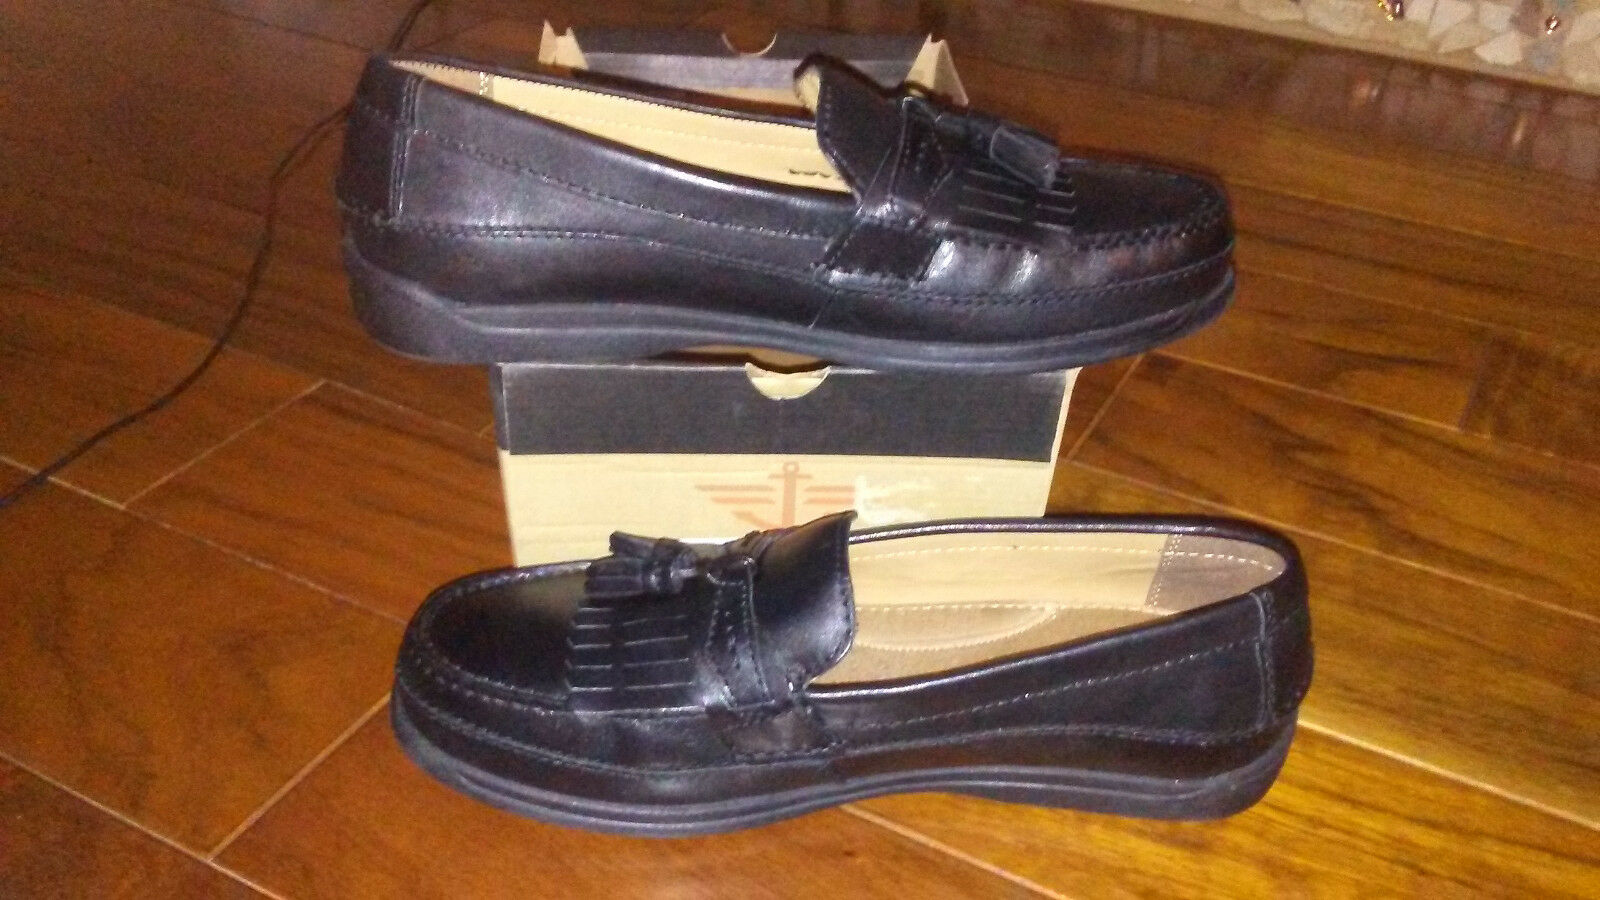 NEW $69 Sinclair Mens Dockers Sinclair $69 Shoes, size 12 d3dc92